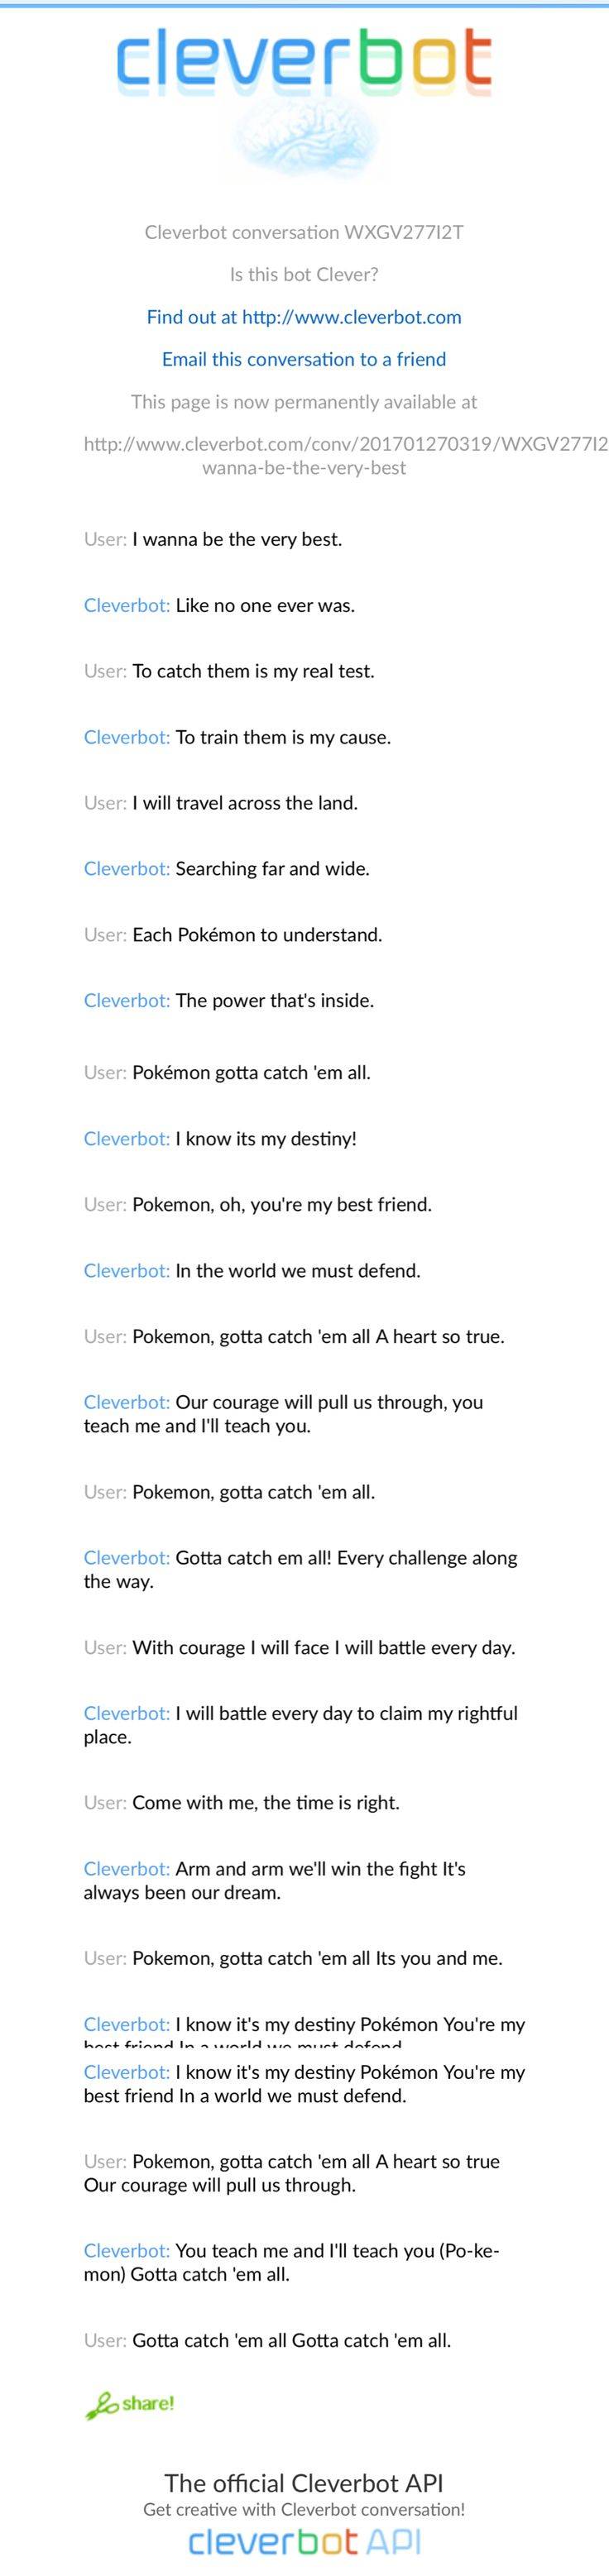 I got clever bot to sing the Pokémon Theme with me lol http://www.cleverbot.com/conv/201701270319/WXGV277I2T_I-wanna-be-the-very-best